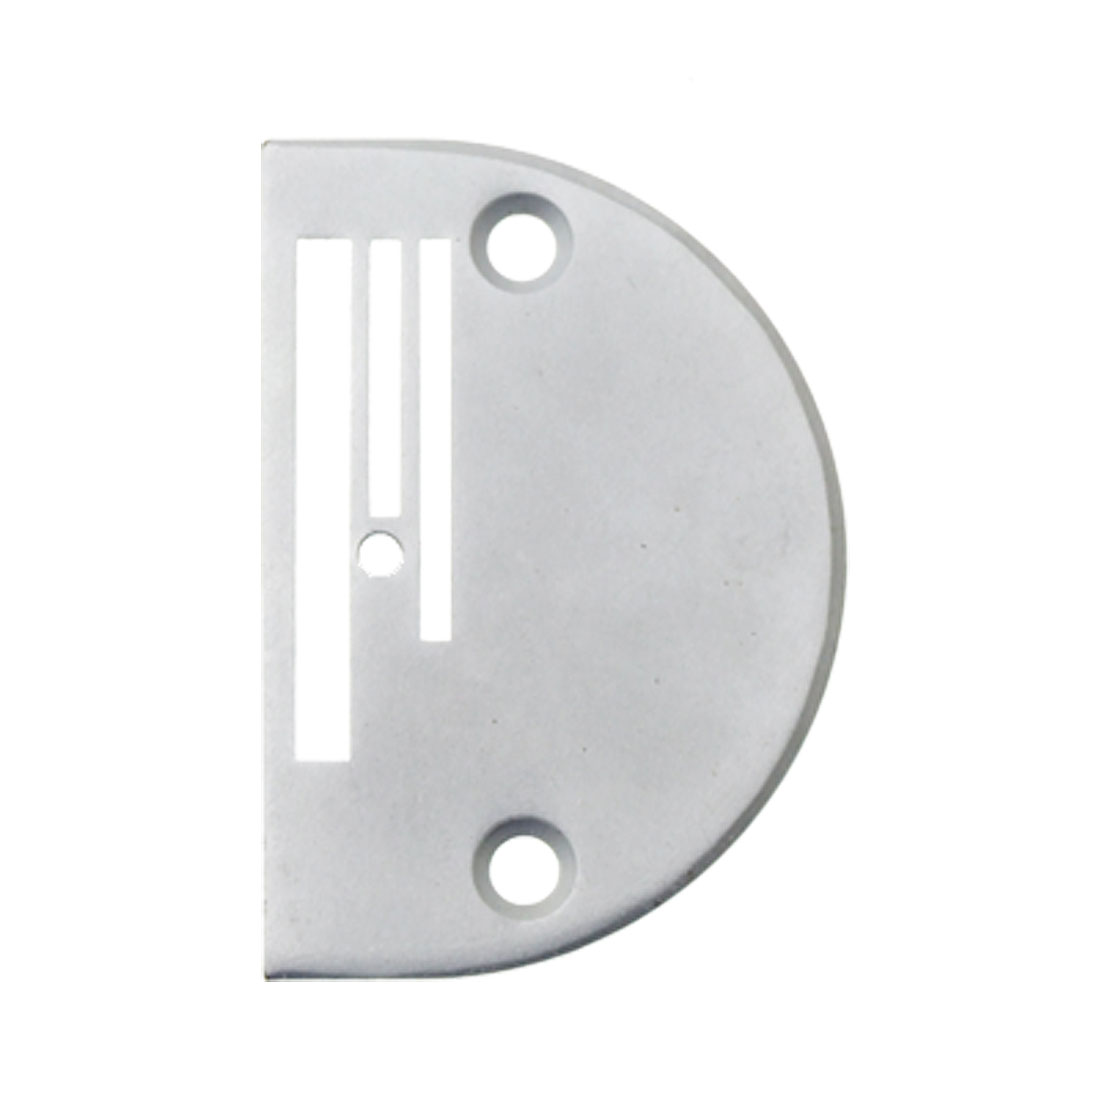 Replacement Parts Sewing Machine Iron Needle Plate